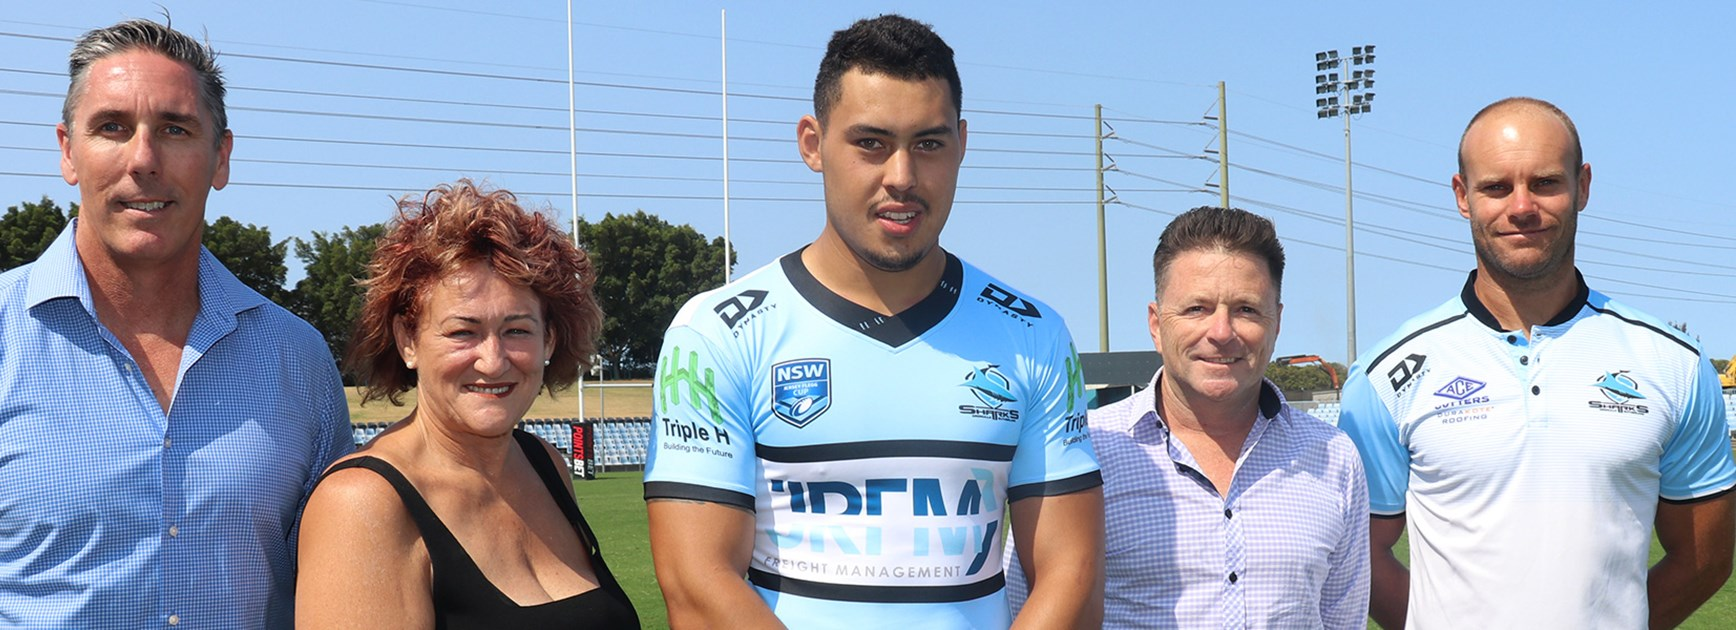 From left: Wayne Miller and Sue Ryan from John Ryan Freight Management, Jensen Taumopeau, David Harrop, Triple H, and Sharks Jersey Flegg coach Daniel Holdsworth